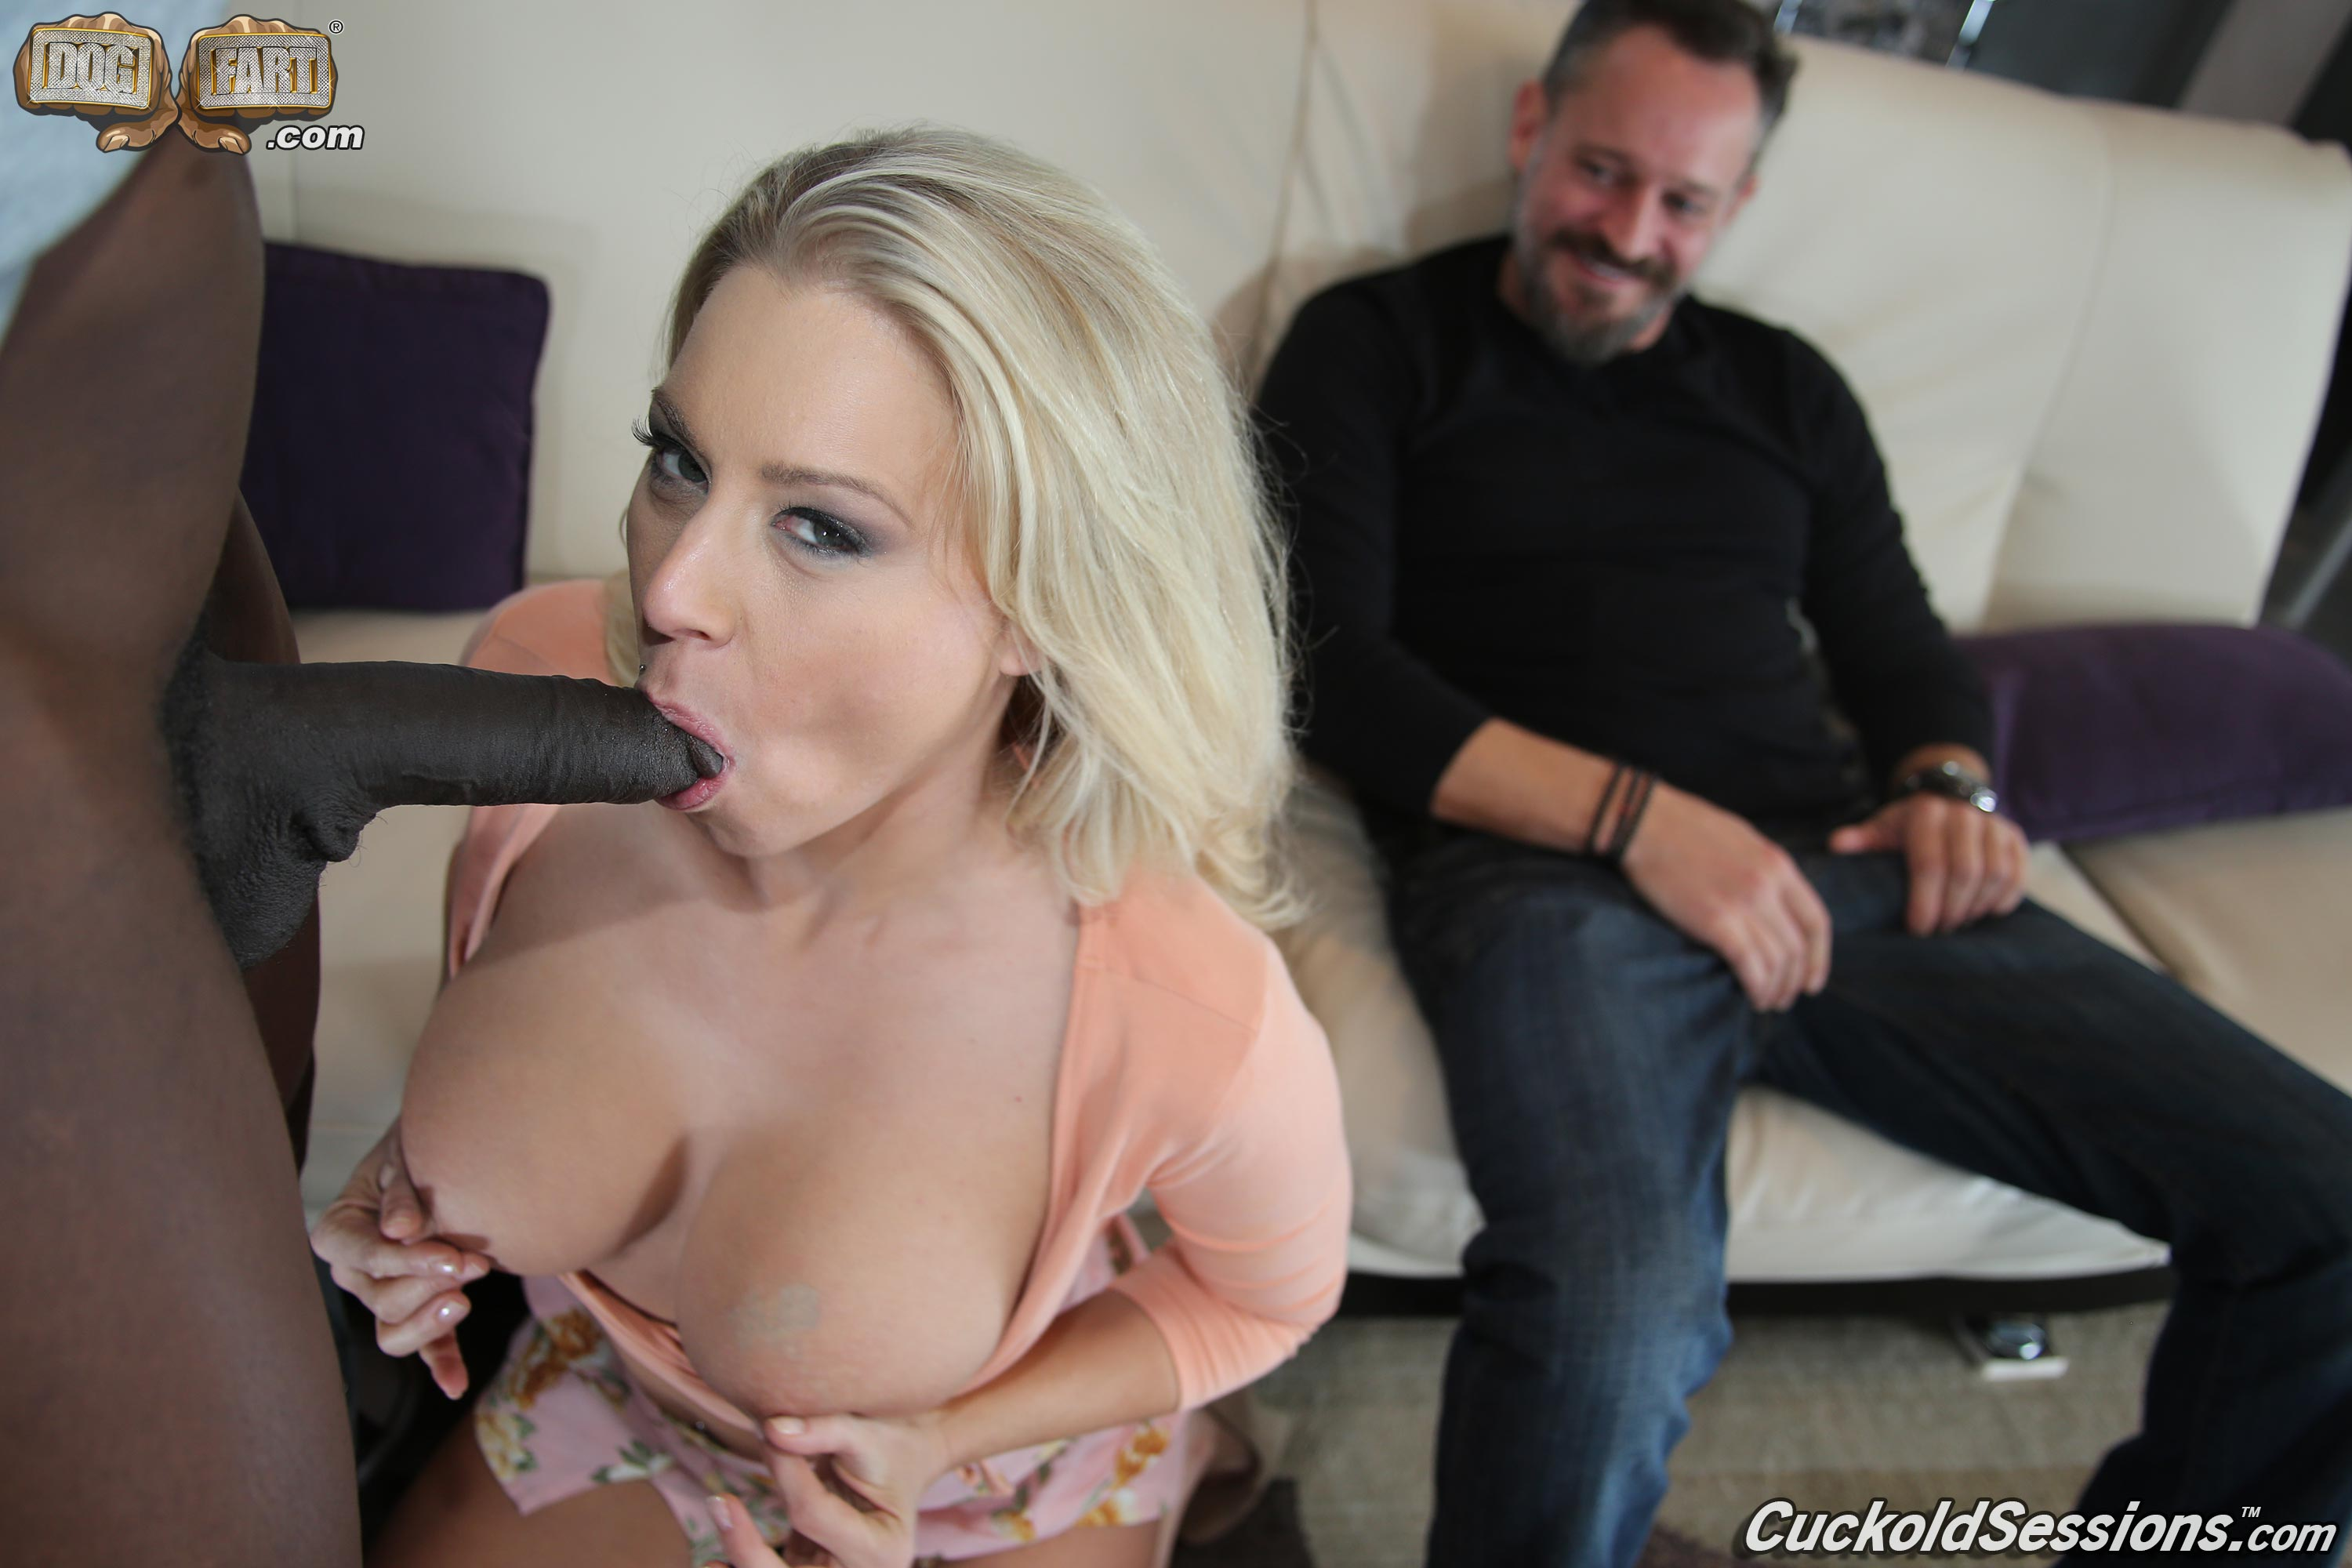 Katie Morgan - Katie Morgan - Cuckold Sessions | Picture (11)